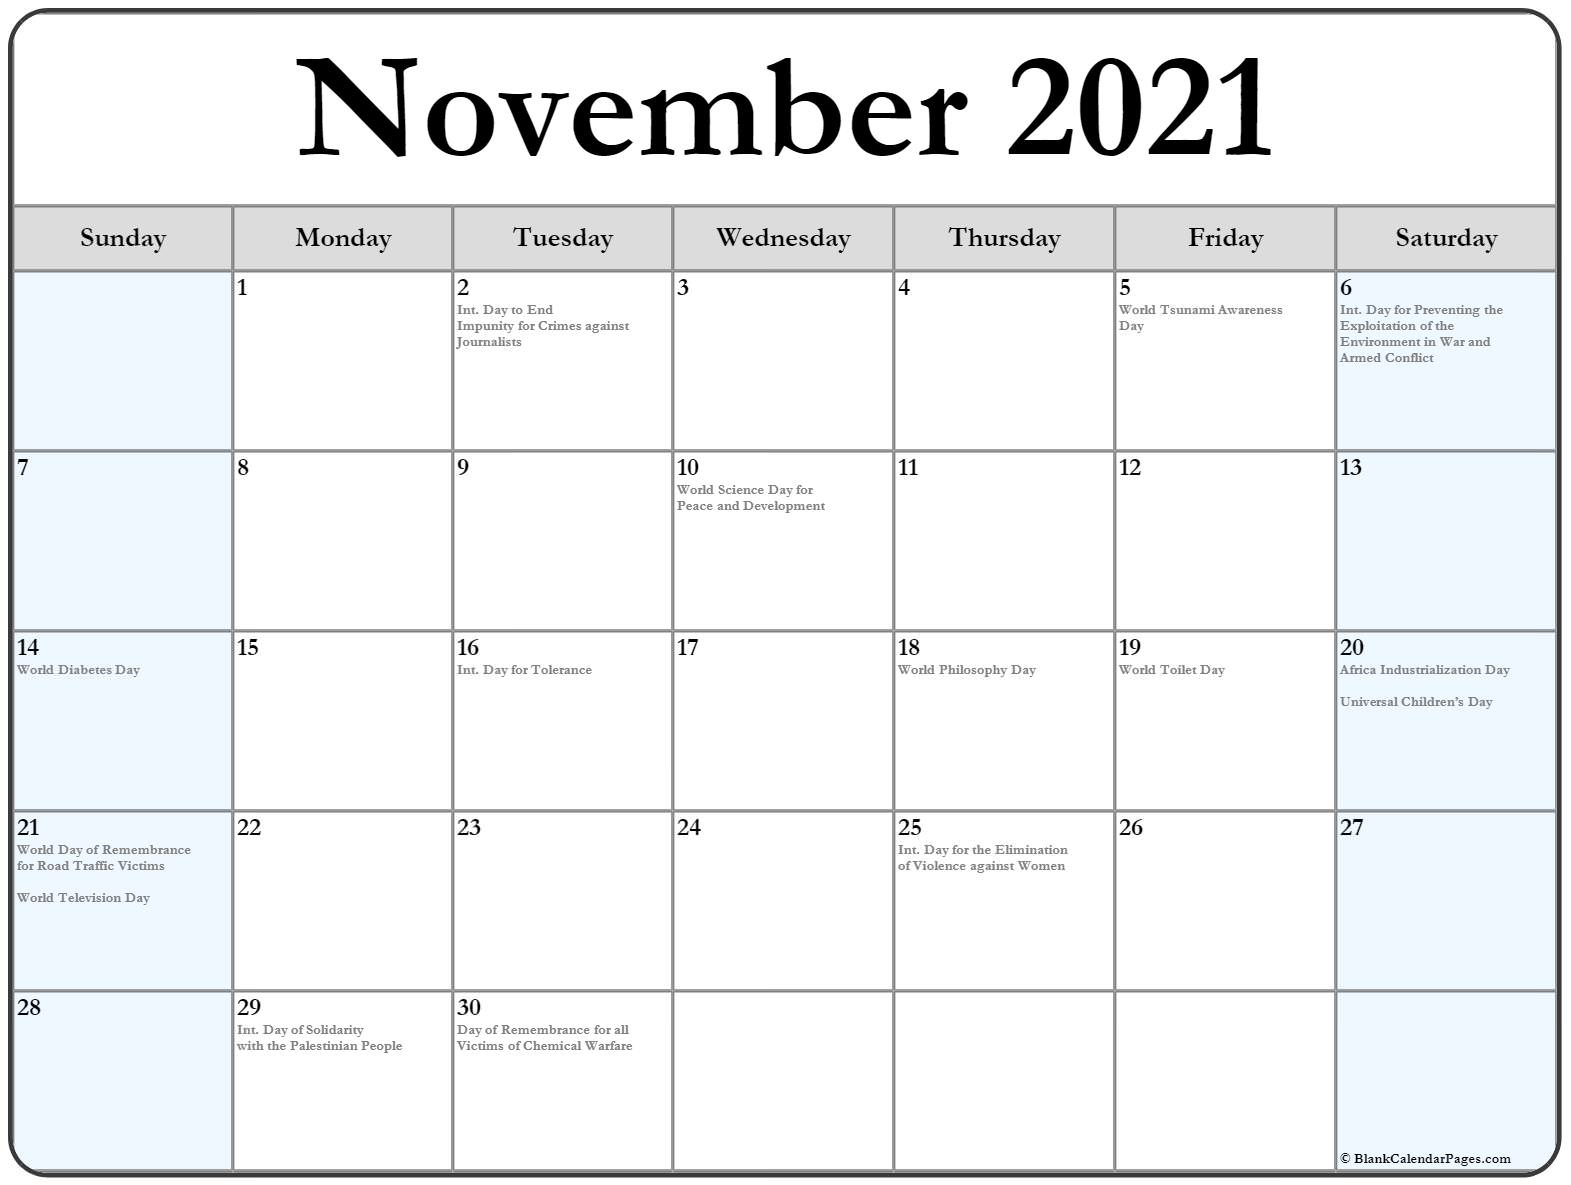 November 2019 with international holidays